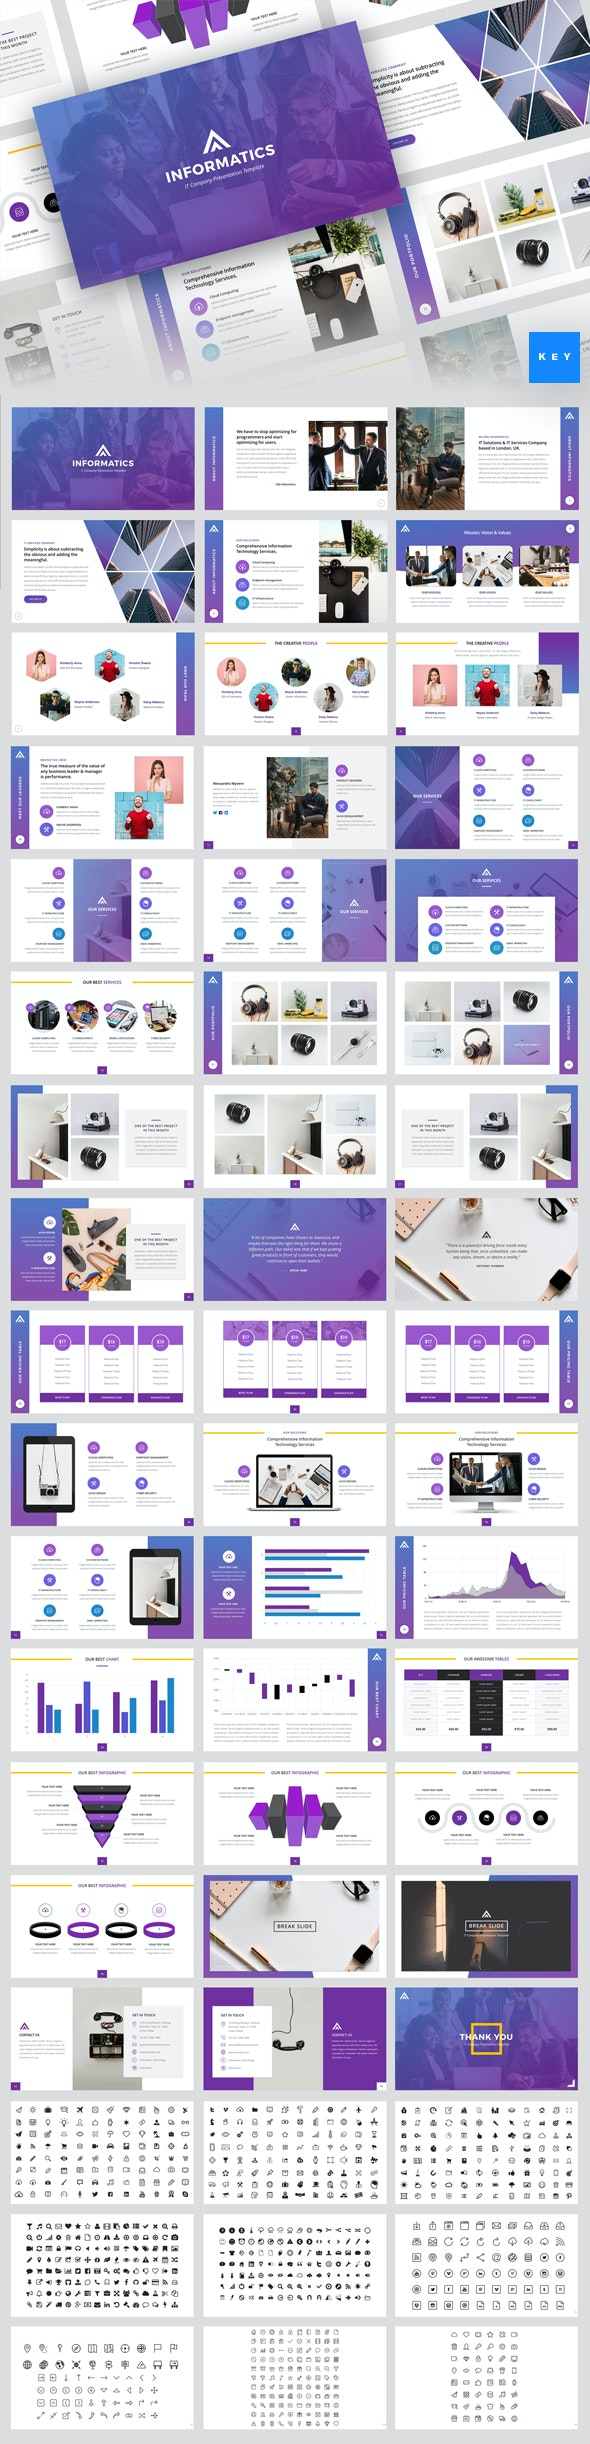 Informatics - IT Company Keynote Template - Business PowerPoint Templates